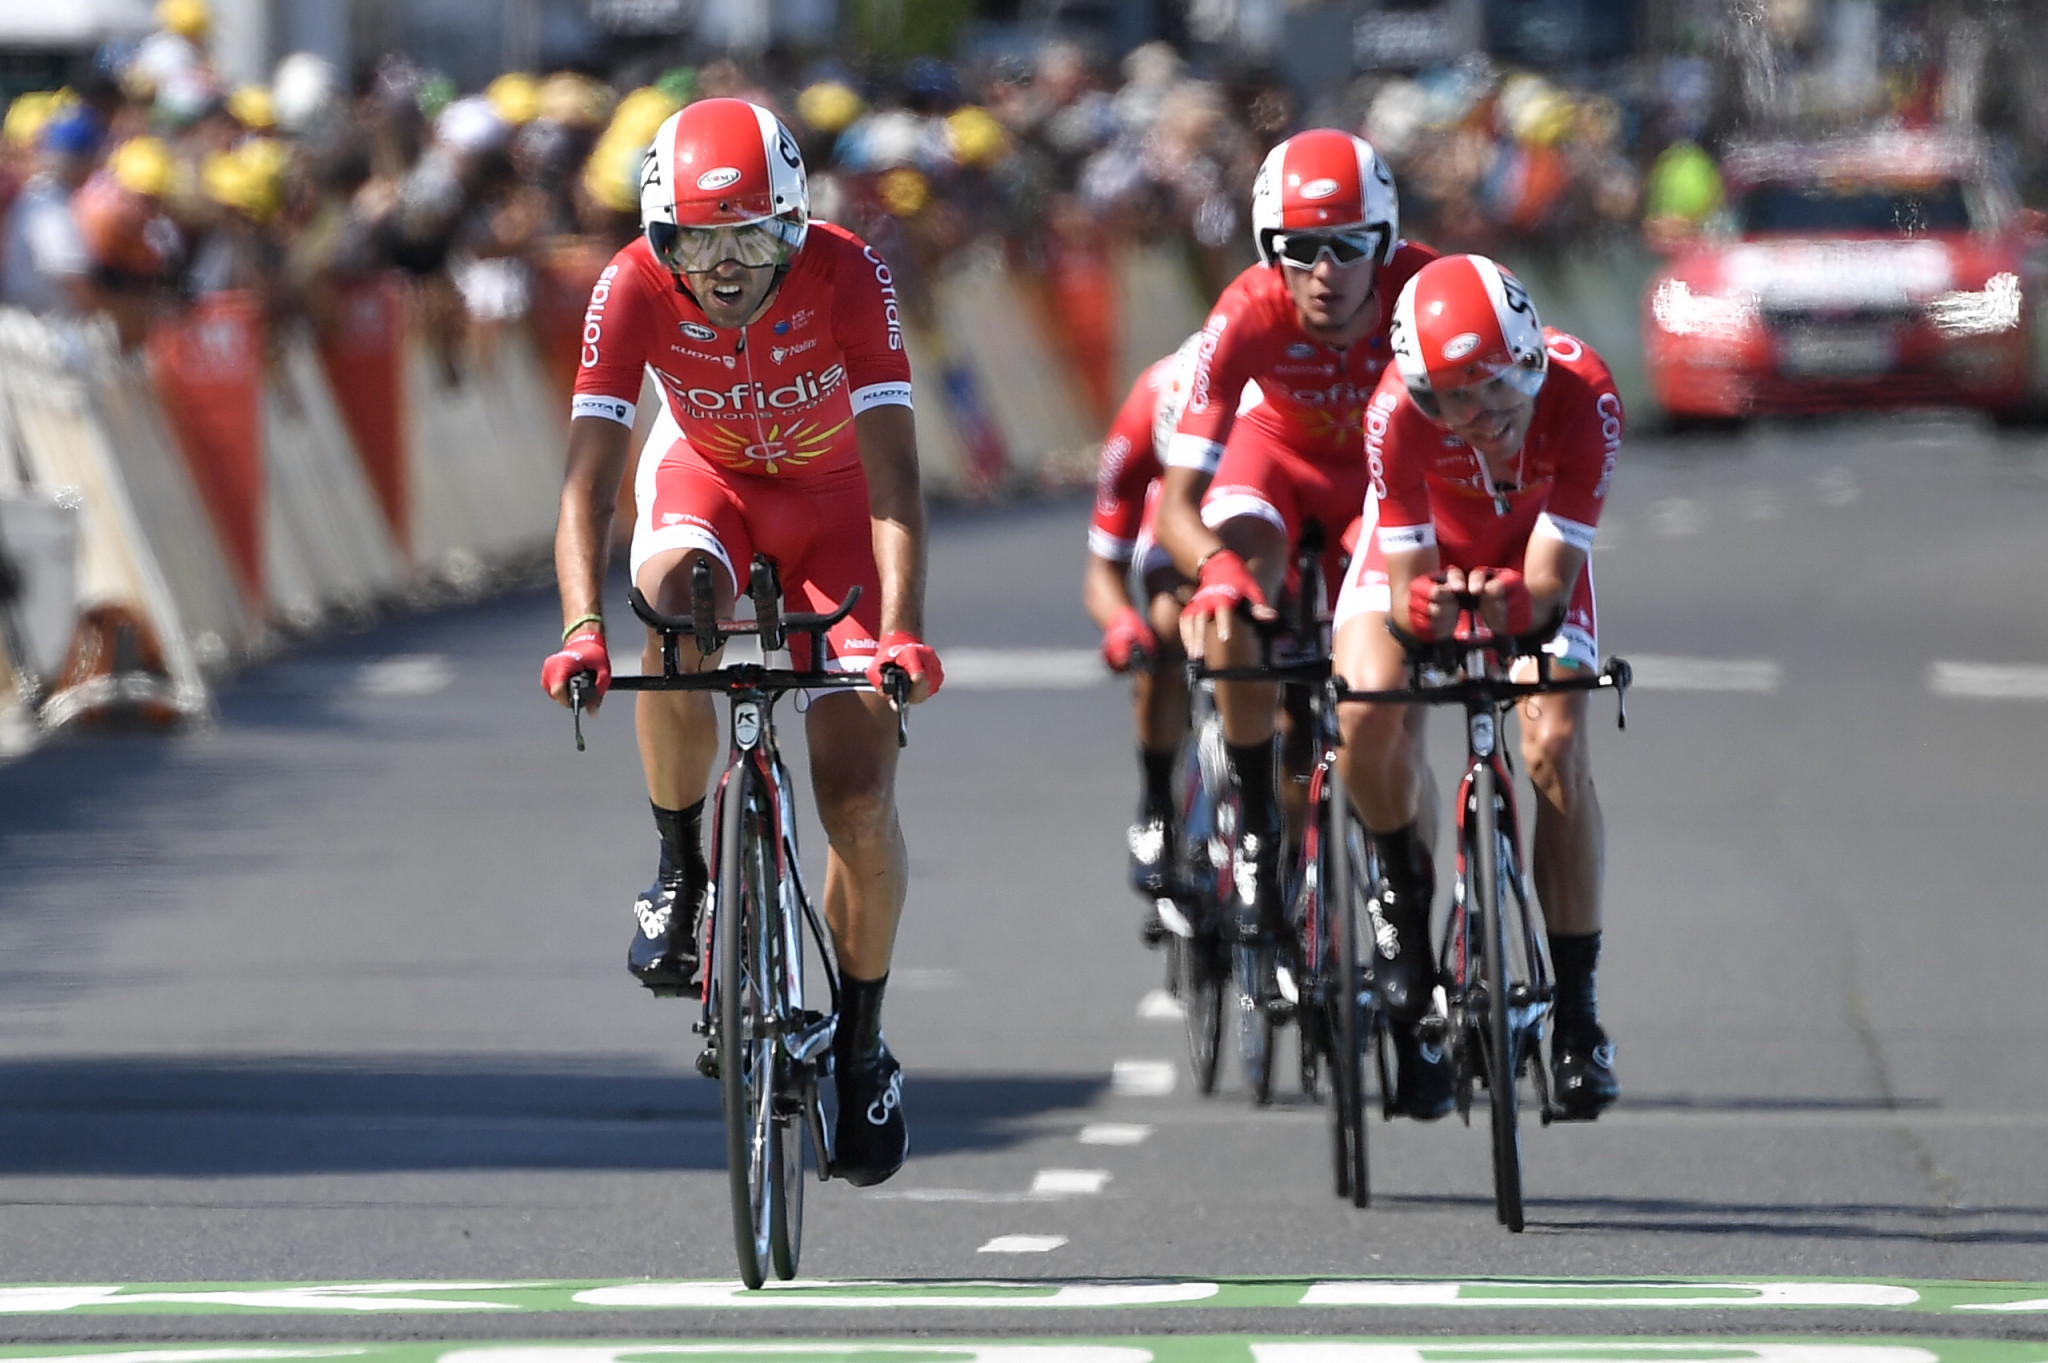 Cofidis Solutions Crédits have been awarded a wildcard to this year's Tour de France ©Getty Images